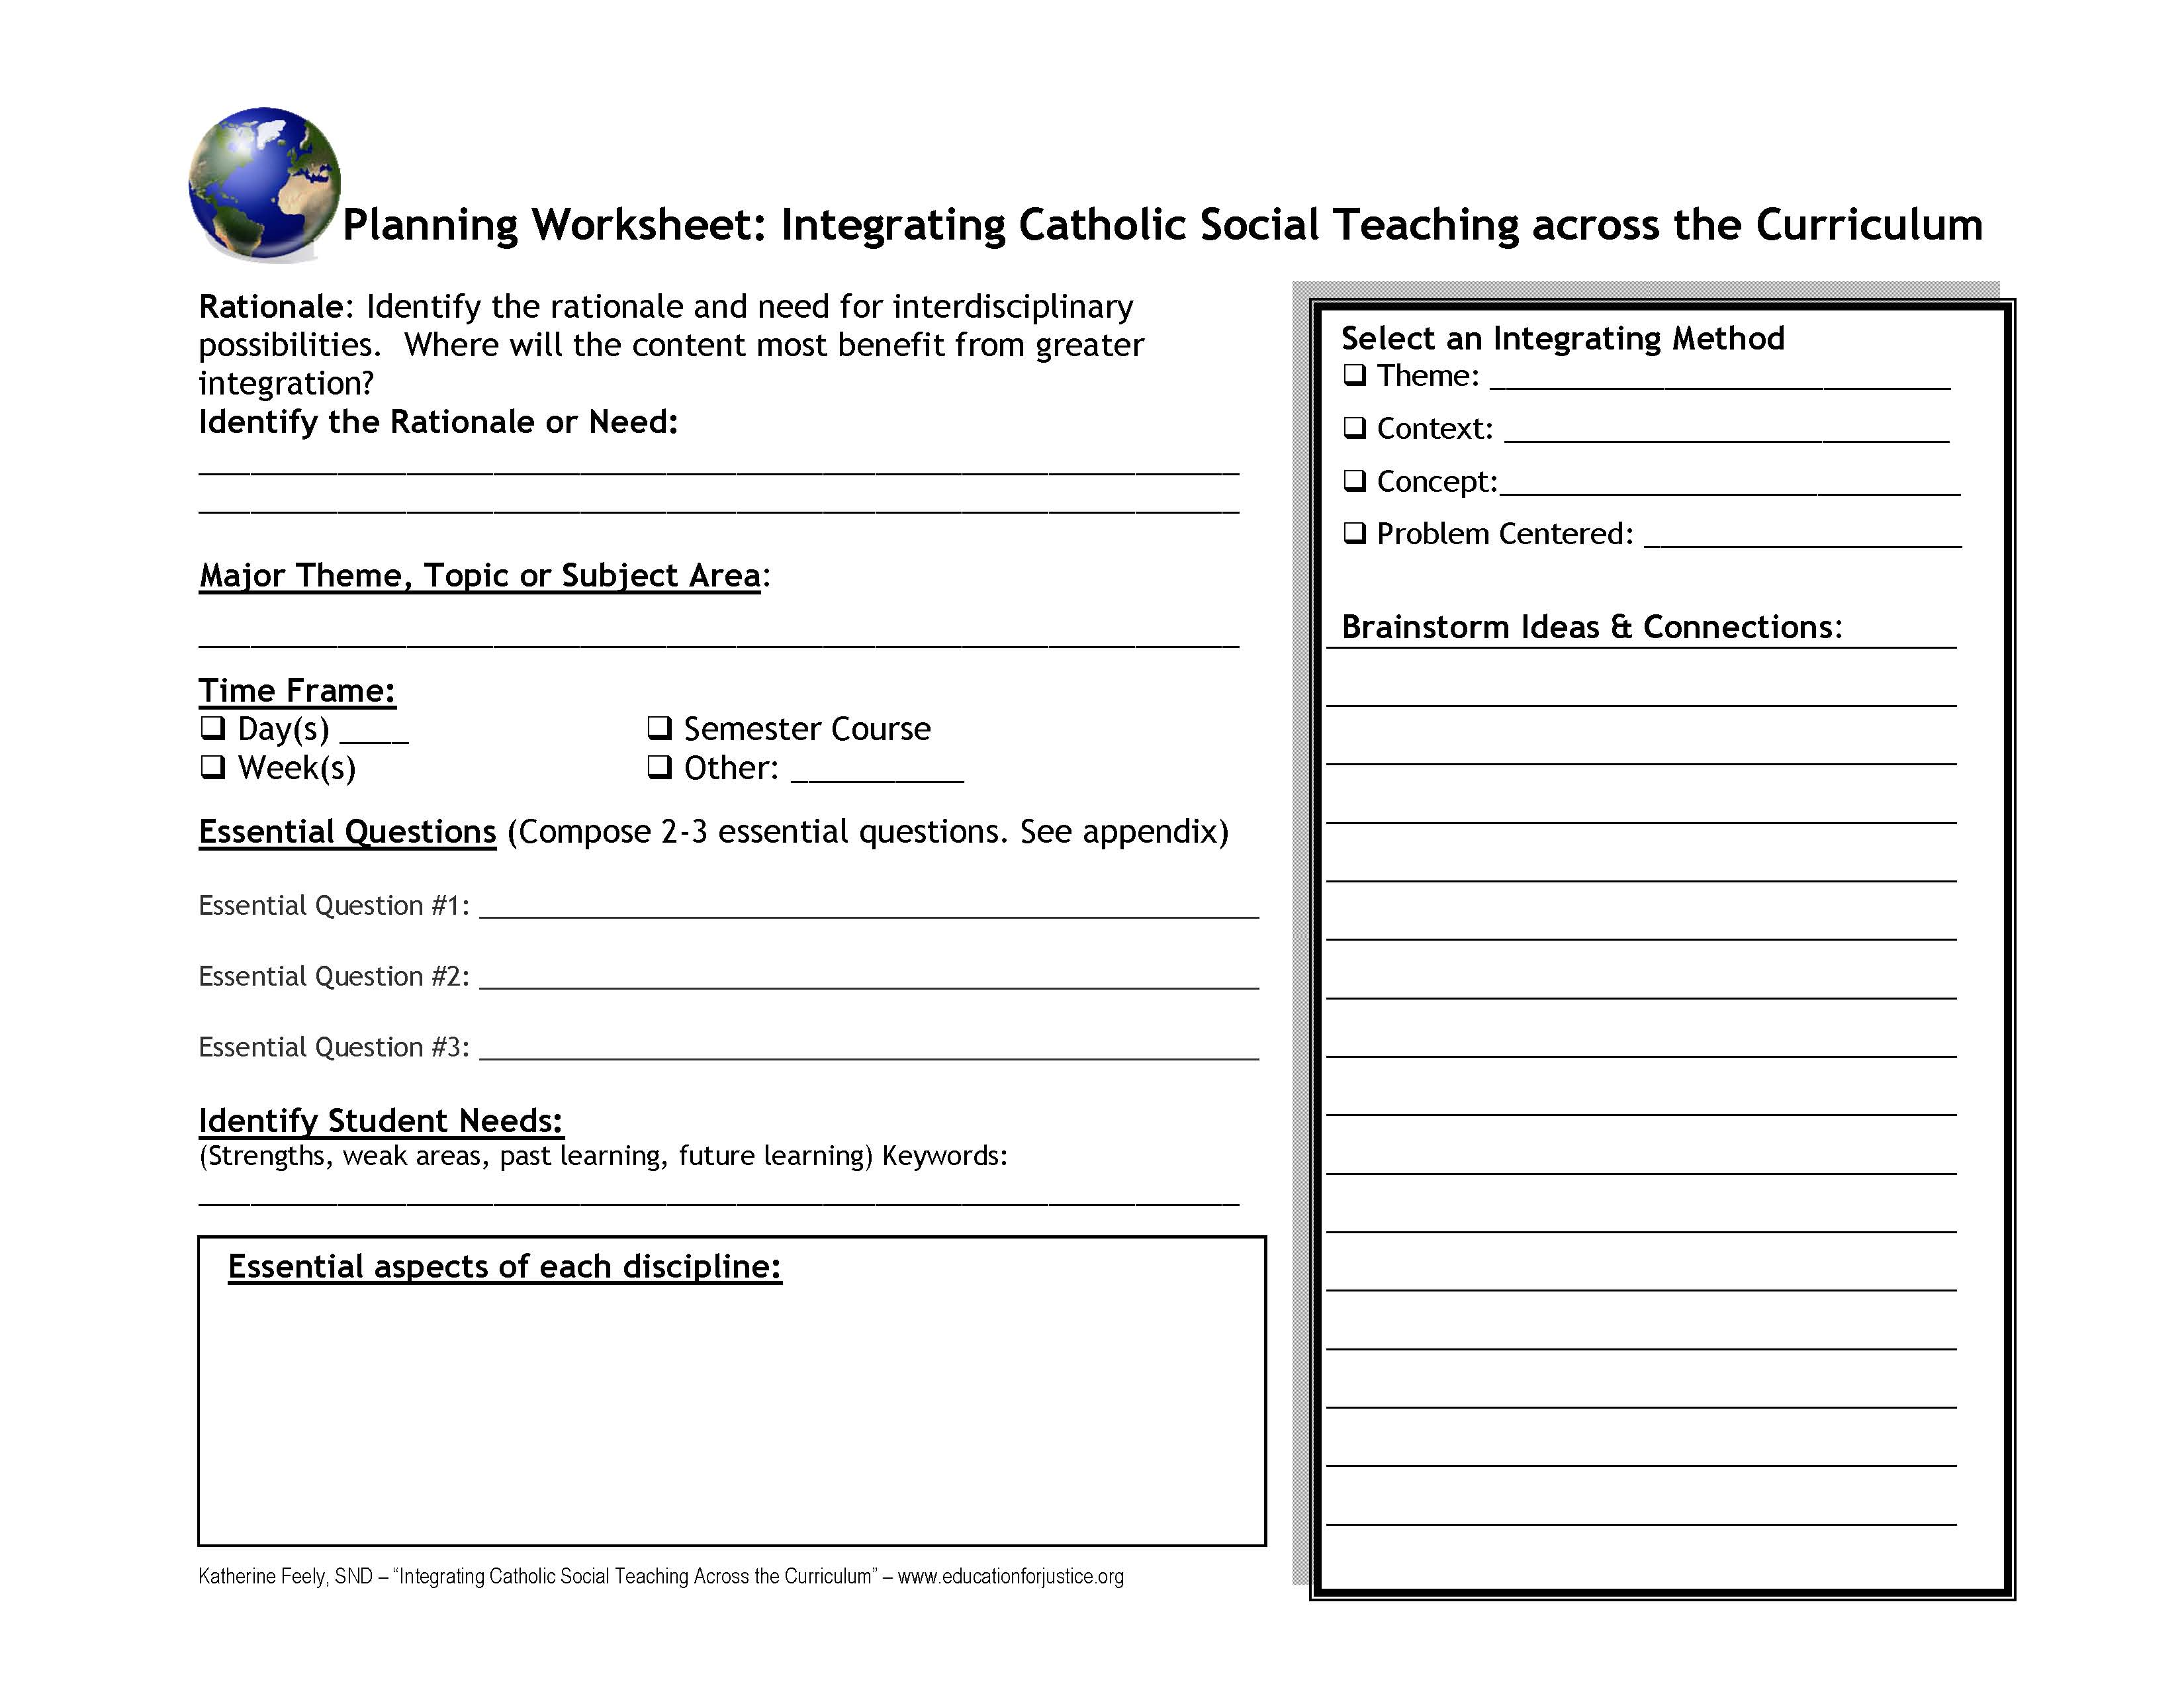 Planning Worksheet For Integrating Catholic Social